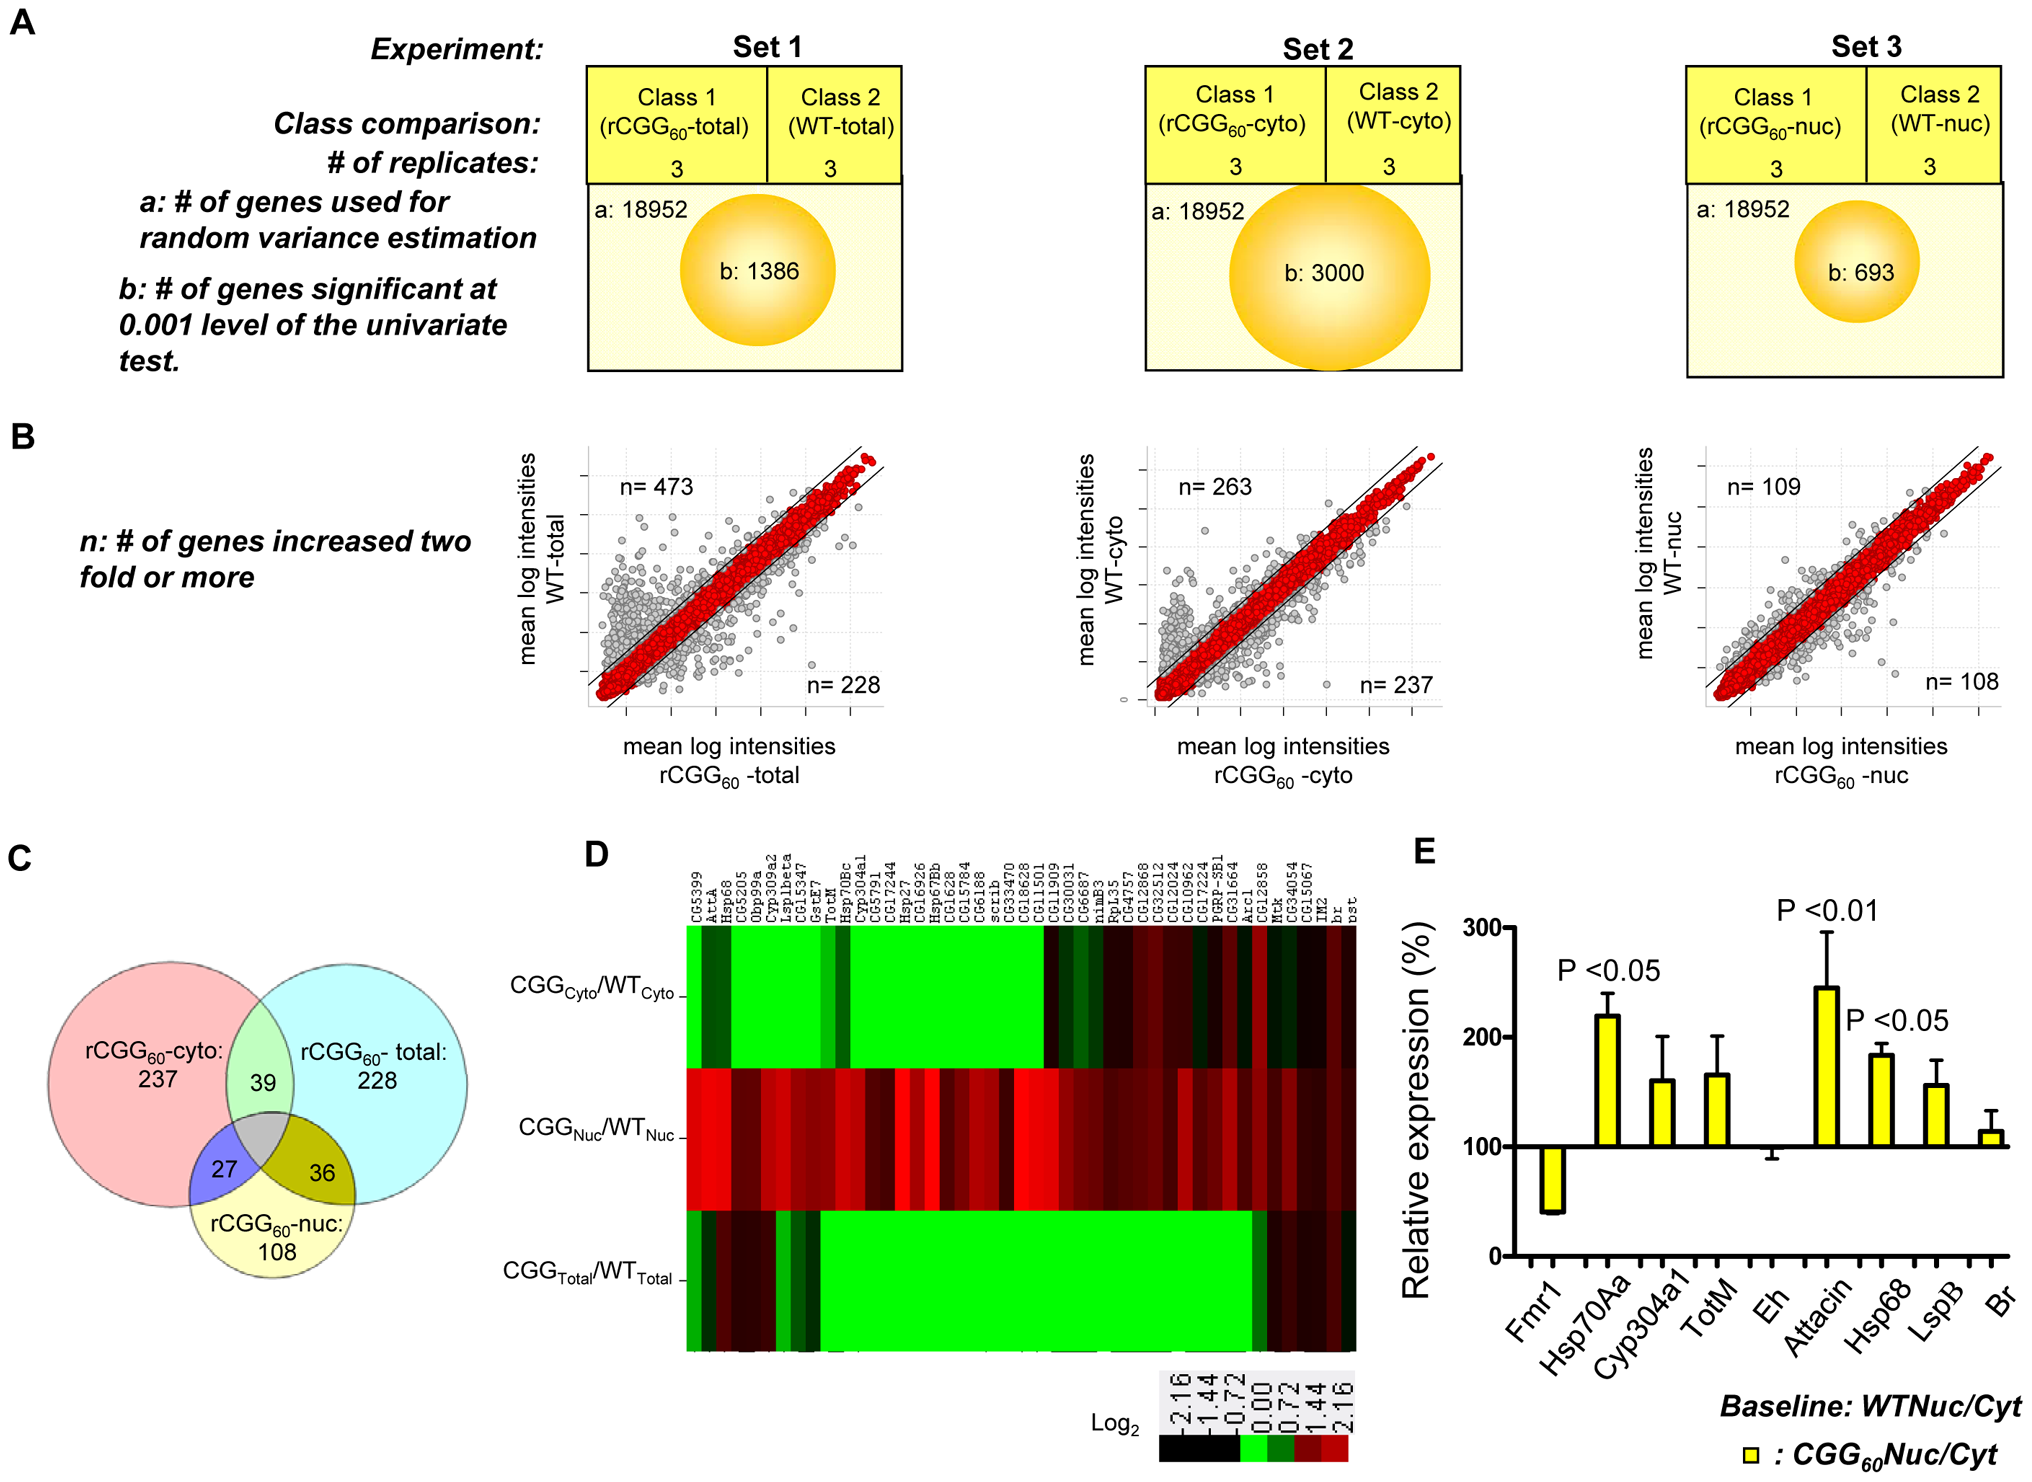 Identification via microarray analyses of selective mRNAs that accumulate in the nucleus as a result of fragile X premutation rCGG repeats.